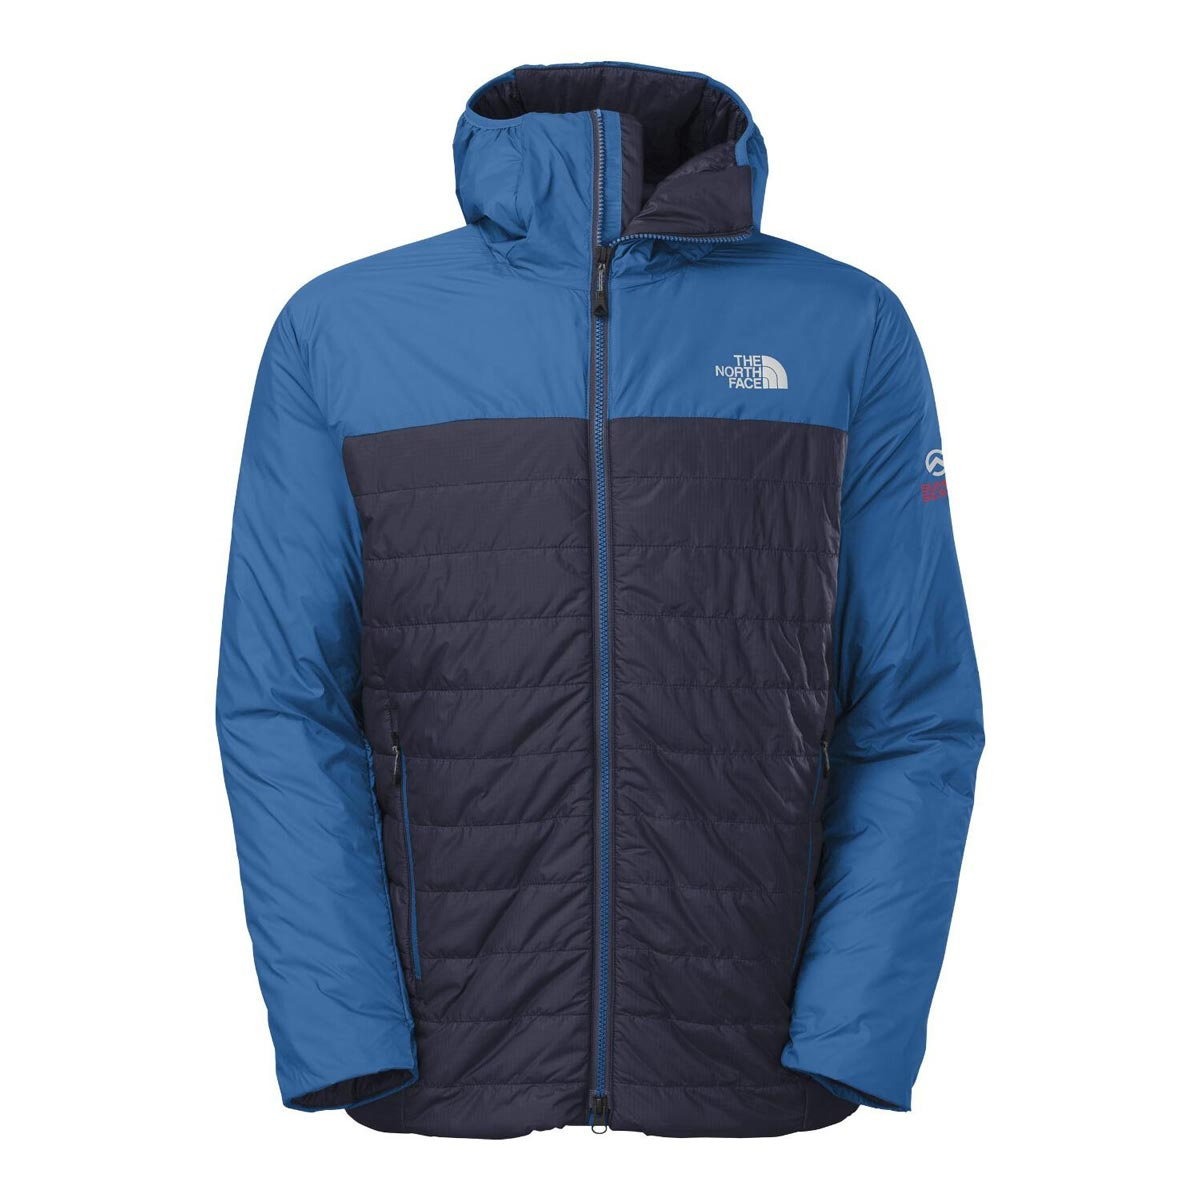 Veste Arenite par The North Face